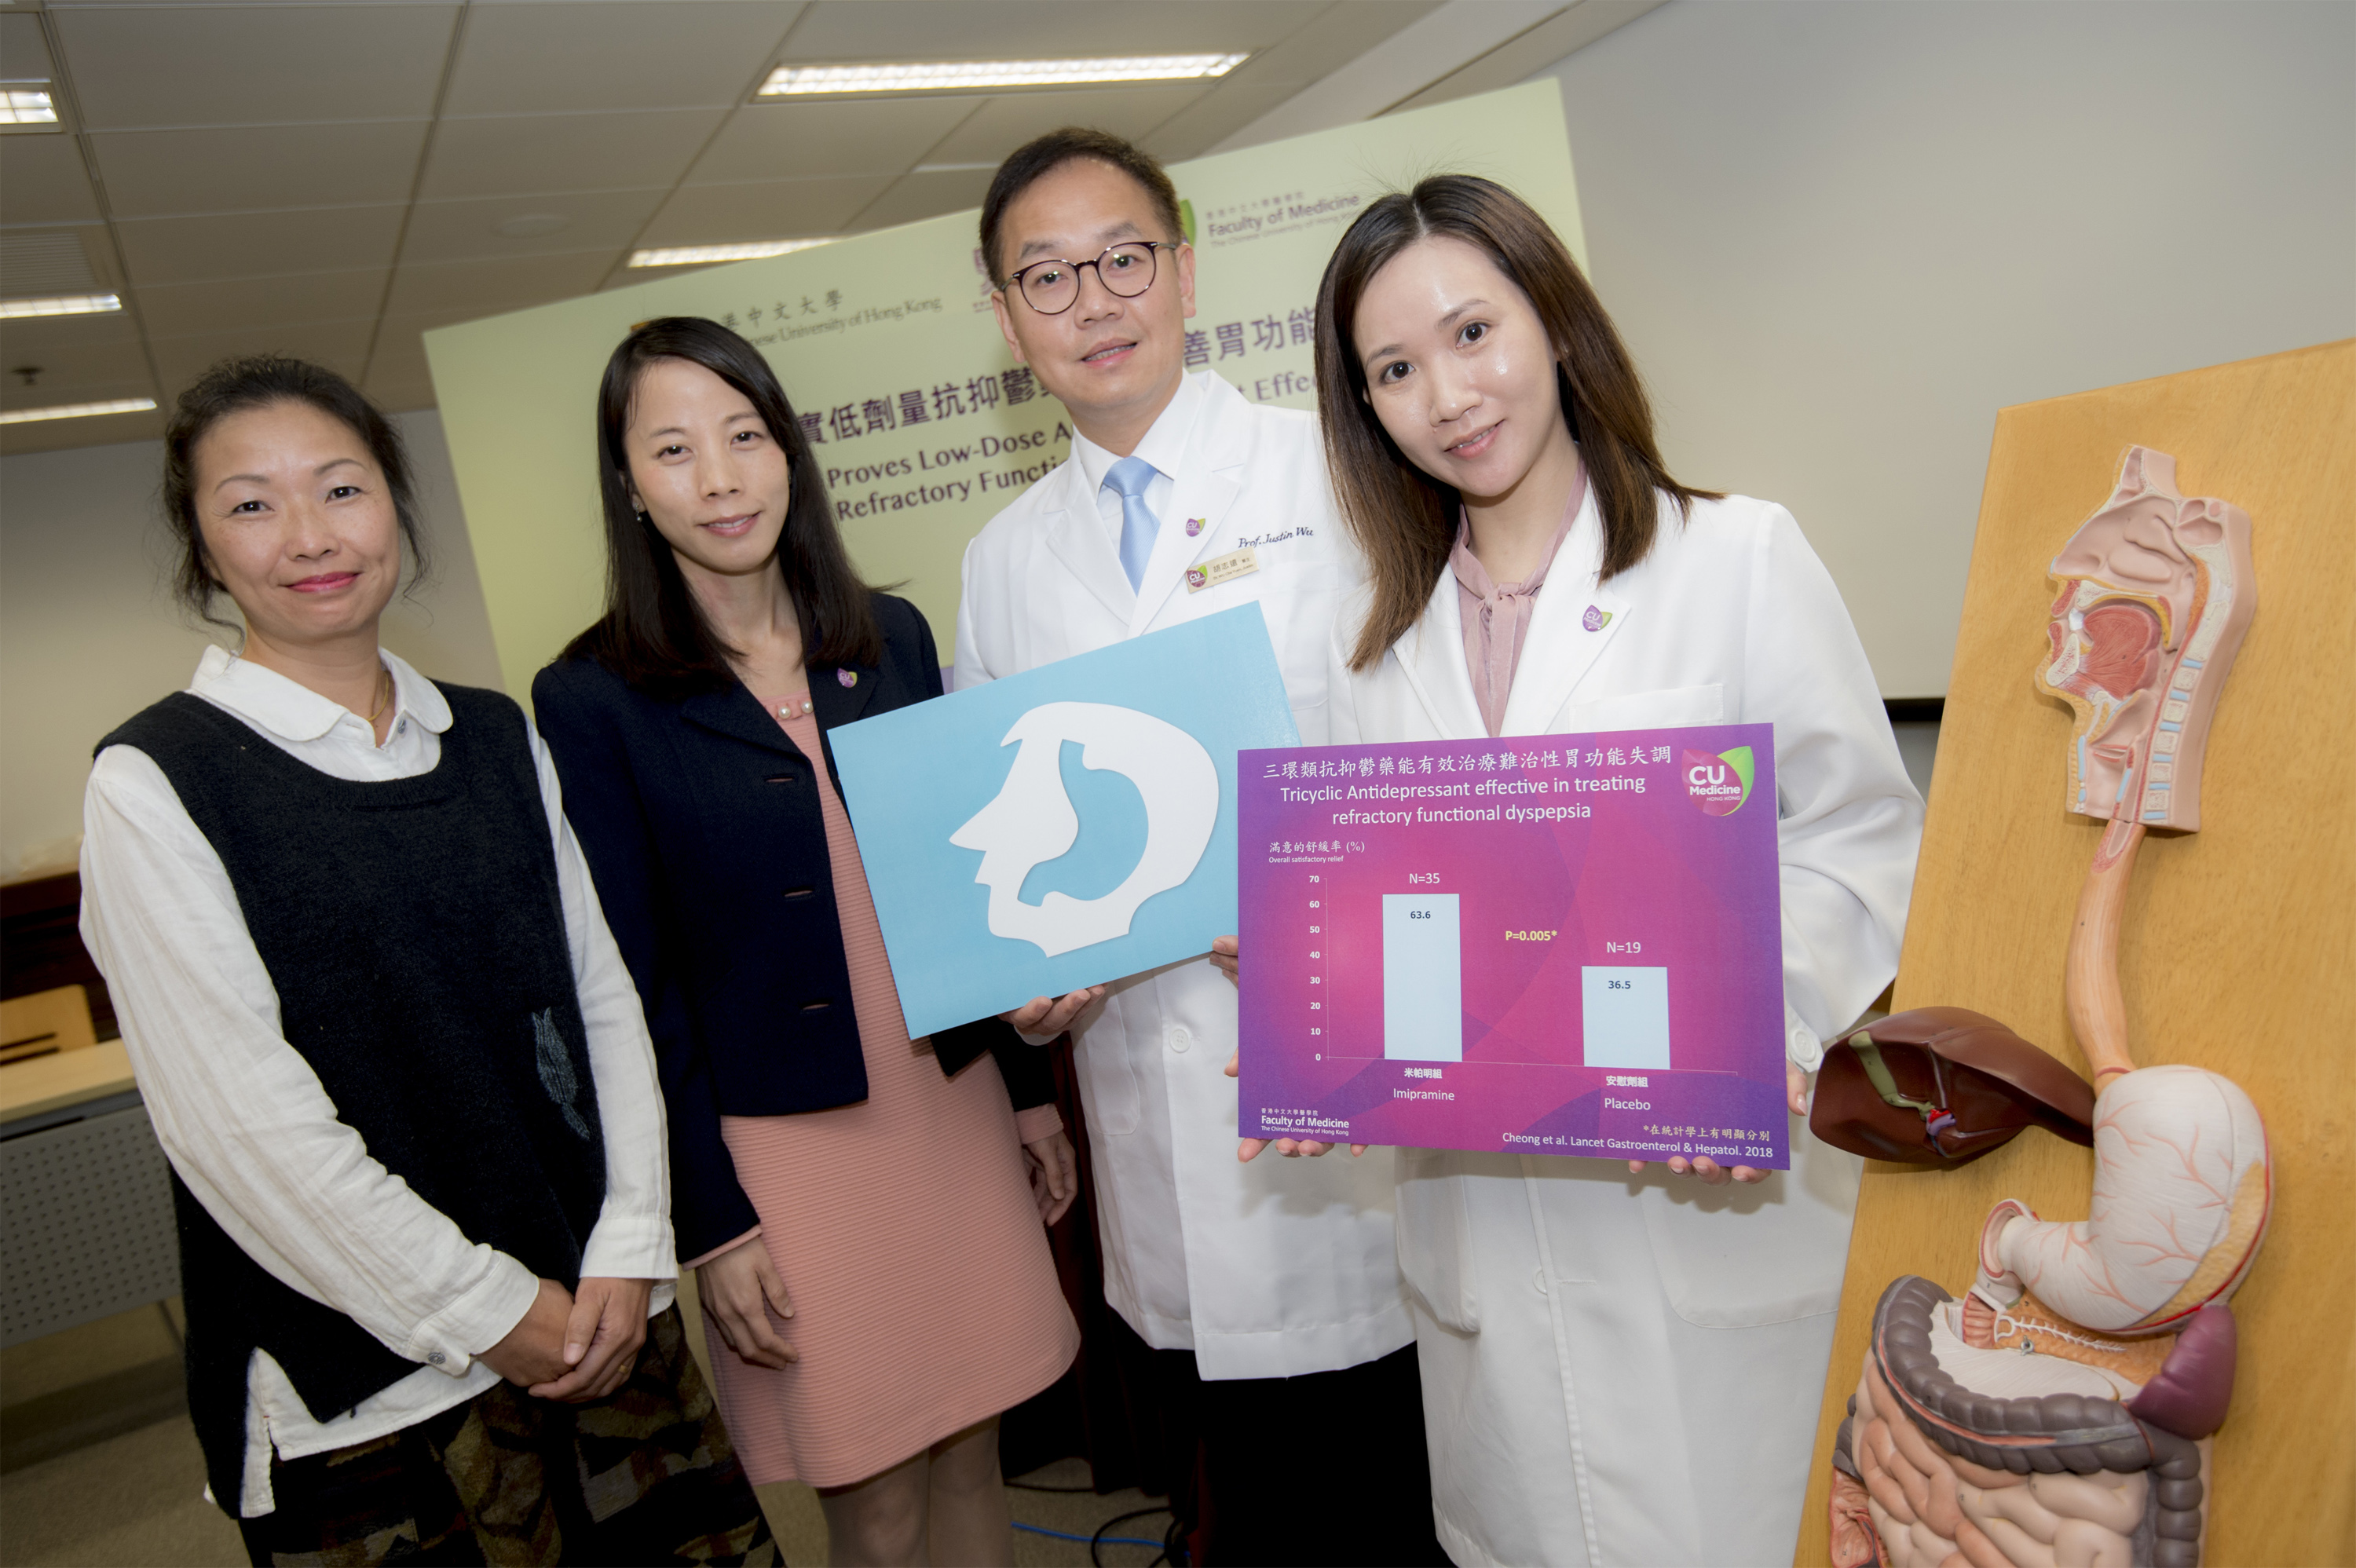 From left: Ms. LEE, functional dyspepsia patient; Ms. Yawen CHAN, Clinical Psychologist, Hong Kong Institute of Integrative Medicine; Professor Justin WU and Research Associate Ms. Pui Kuan CHEONG from the Division of Gastroenterology and Hepatology, Department of Medicine and Therapeutics, CUHK Medicine.